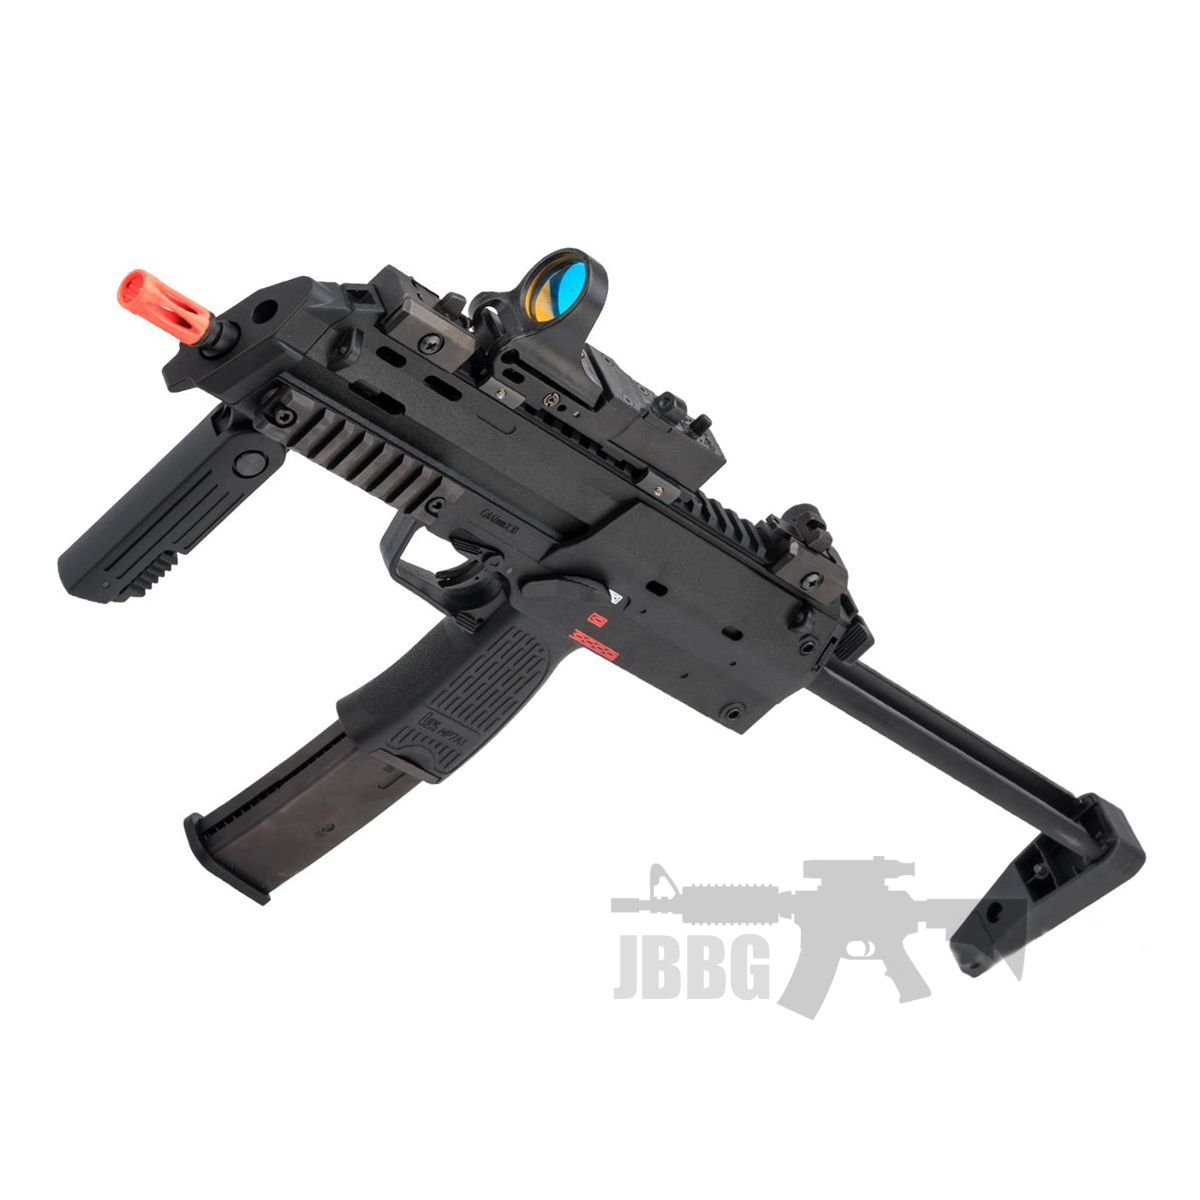 HK MP7 Full Auto Airsoft Gas Blowback Rifle